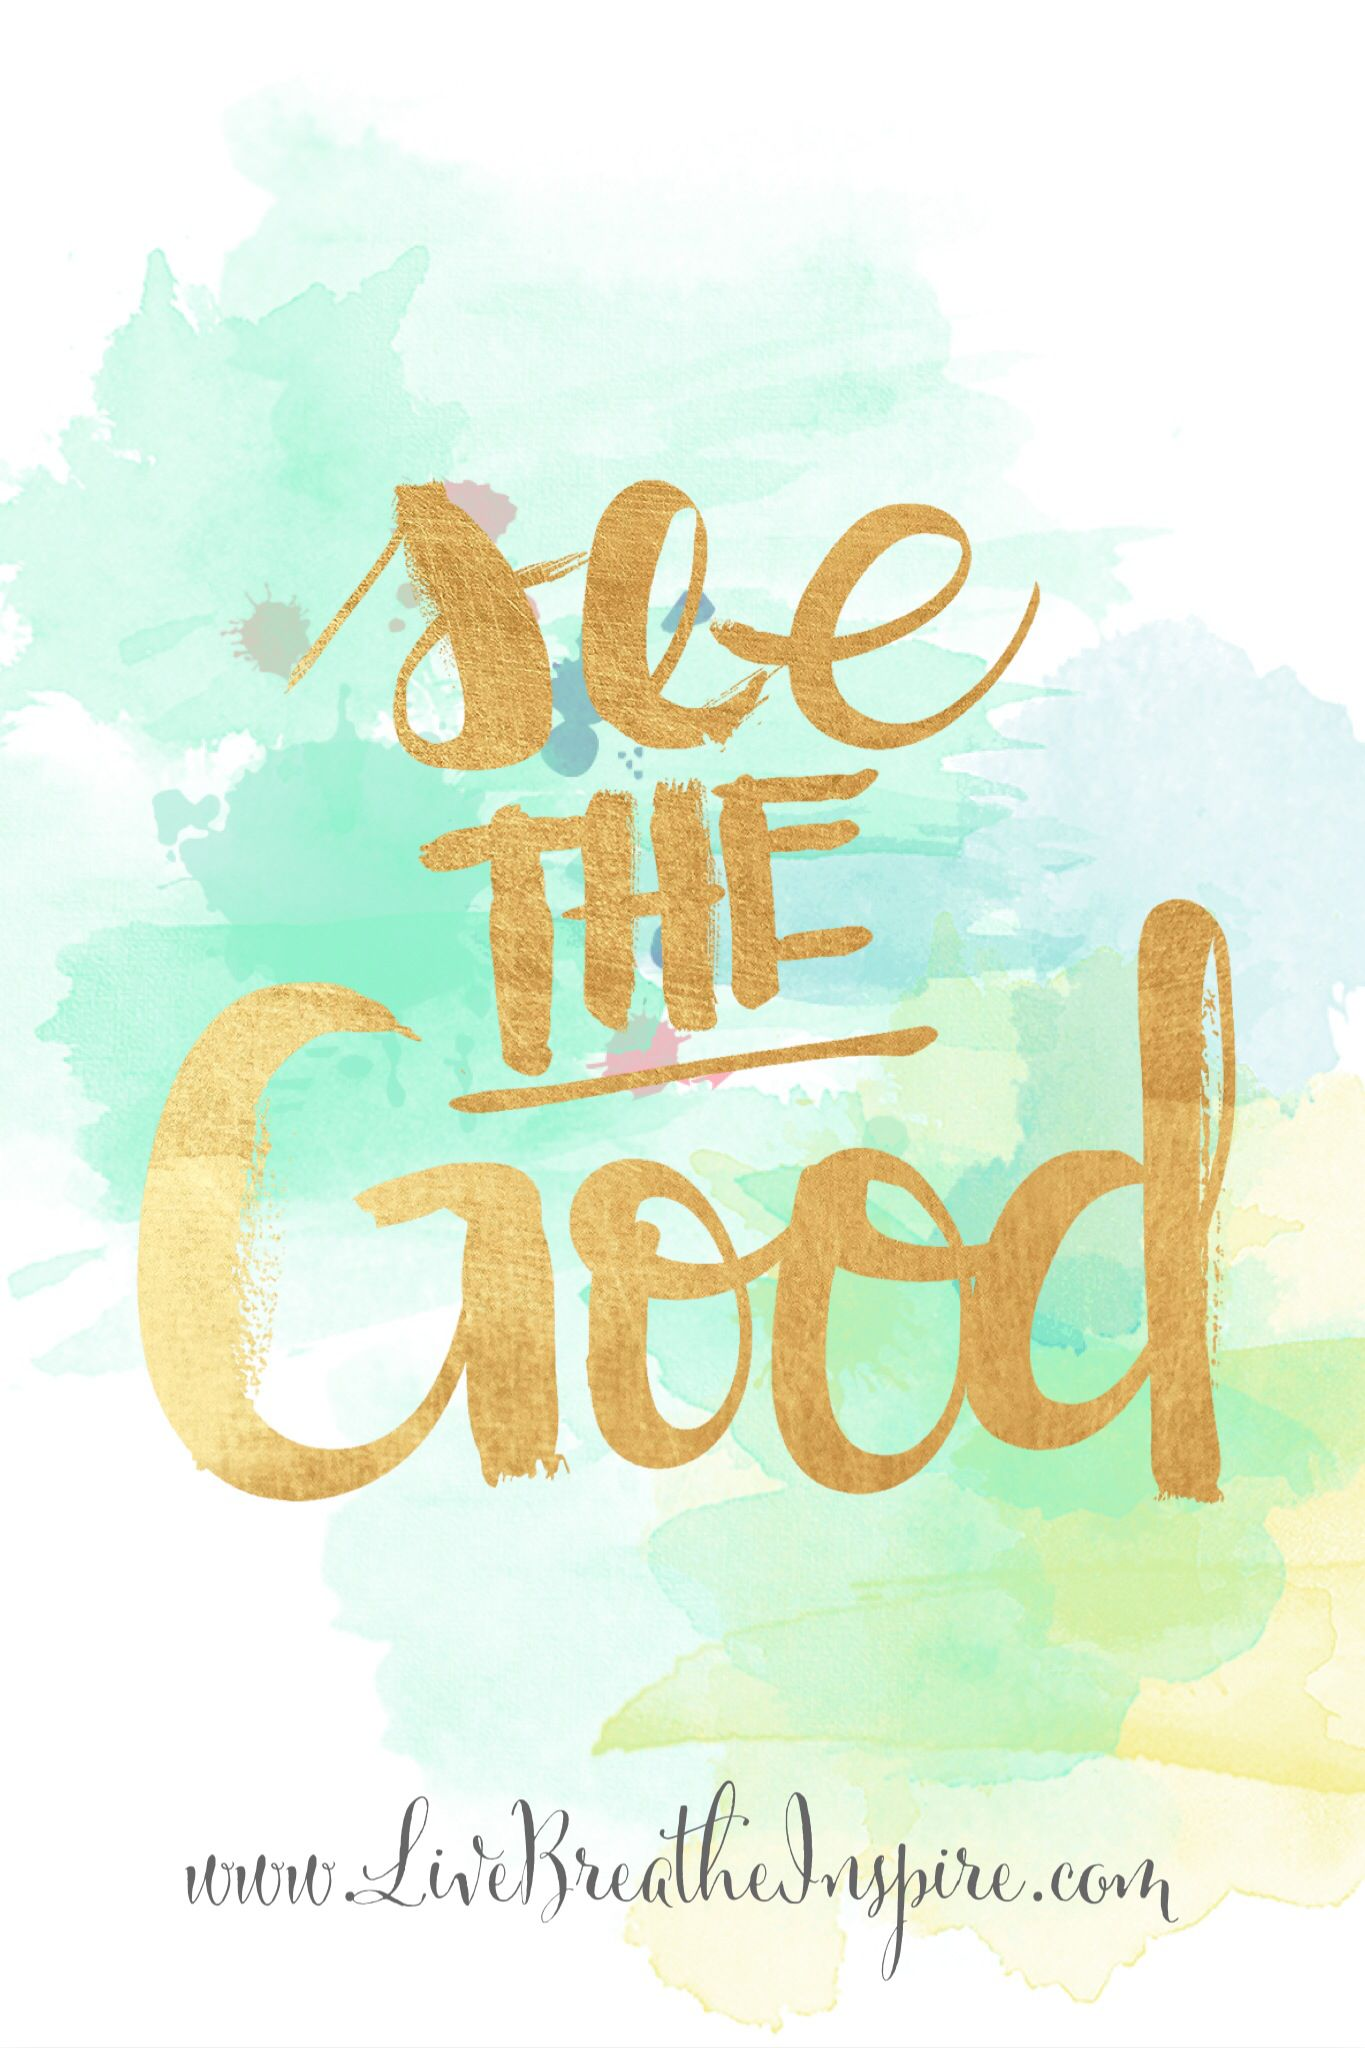 Choose To See The Good In Everyone And Each Situation You Will Be A